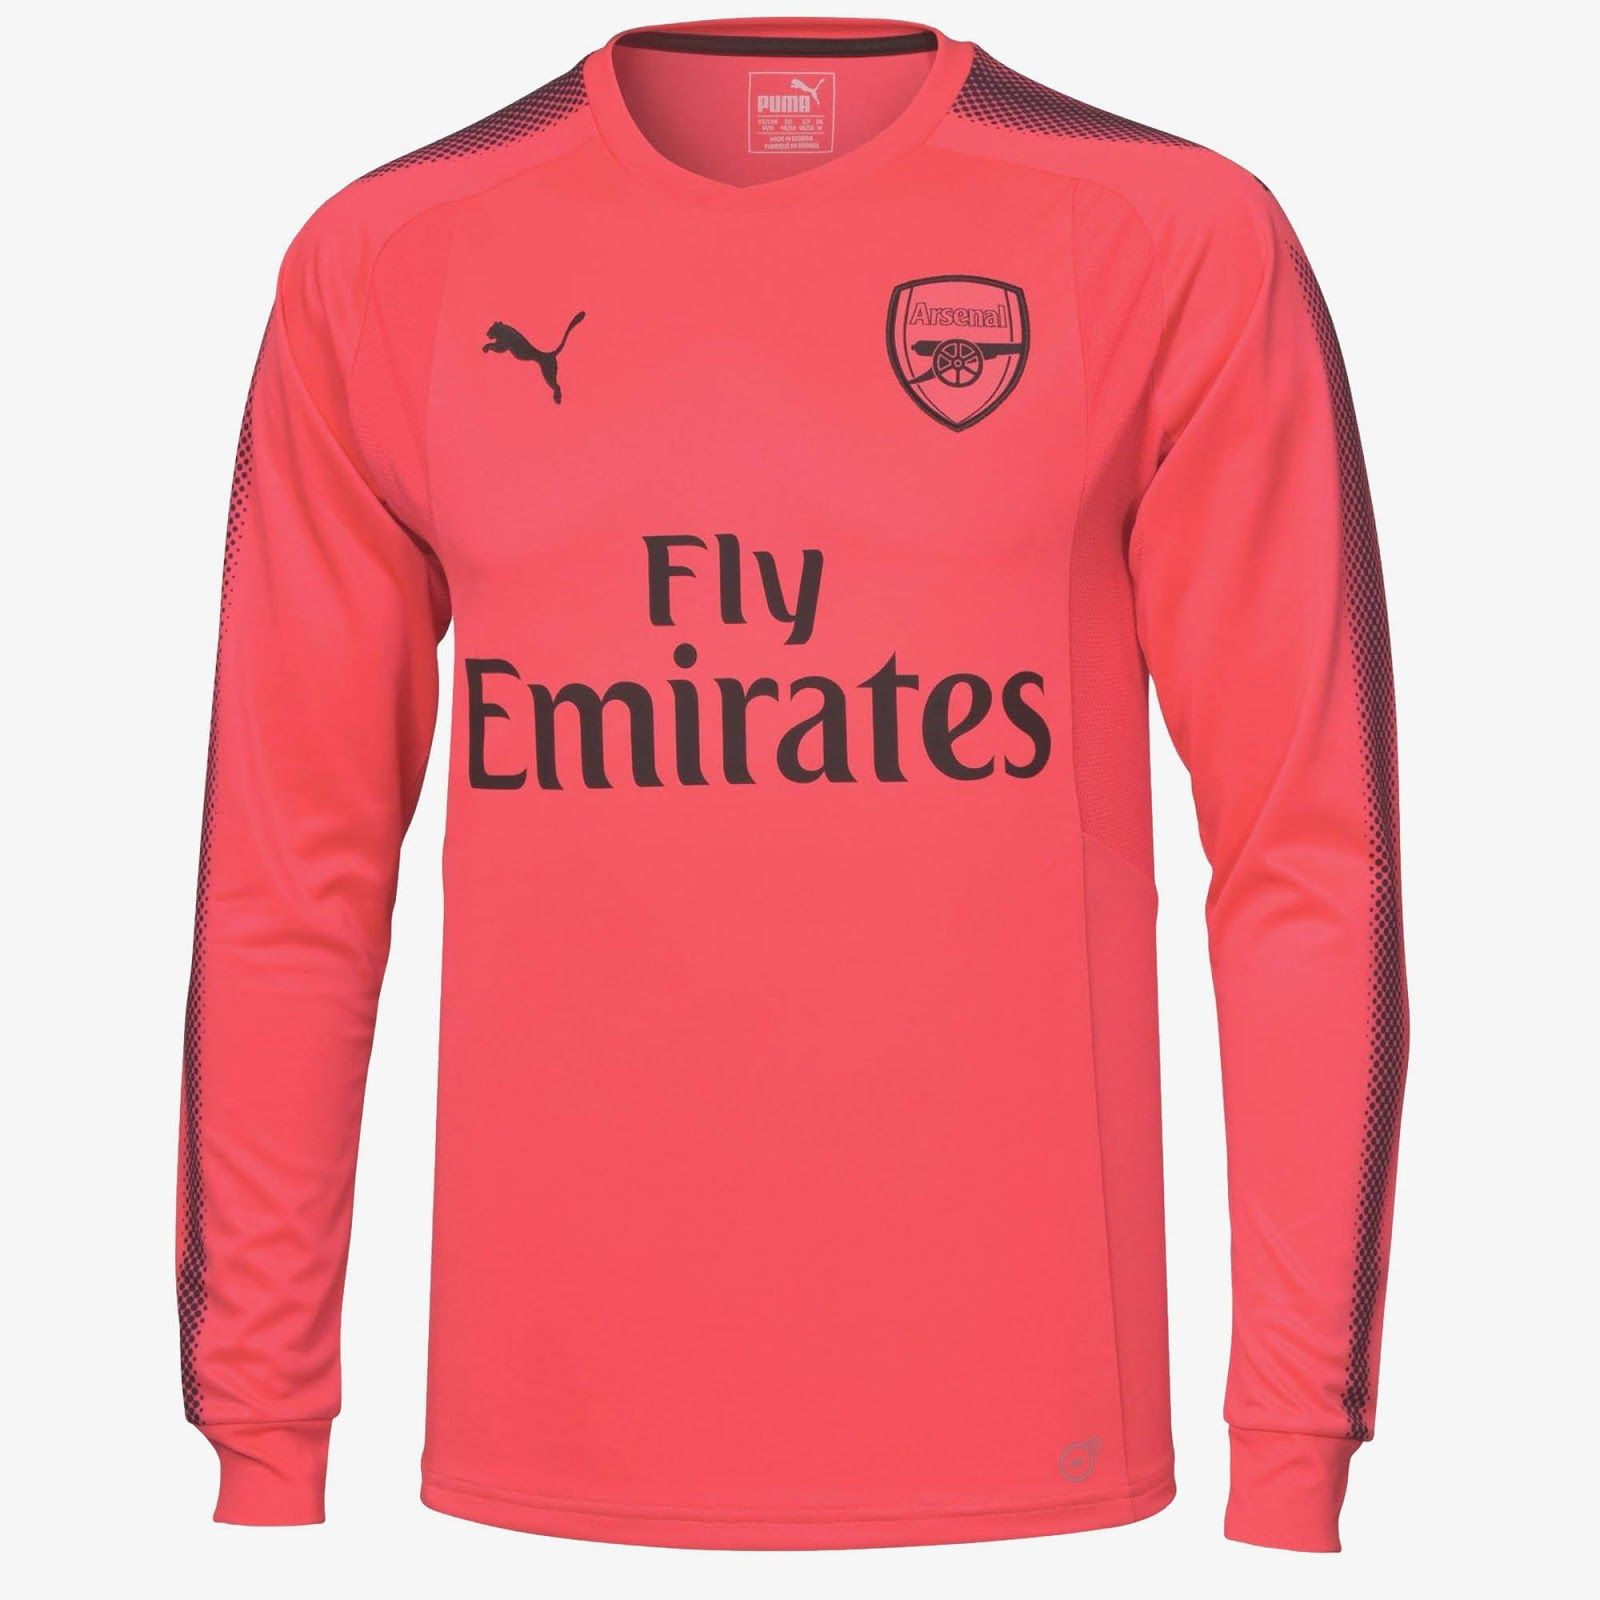 0fbdd1a22 2017-18 Arsenal LS Pink Goalkeeper Shirt